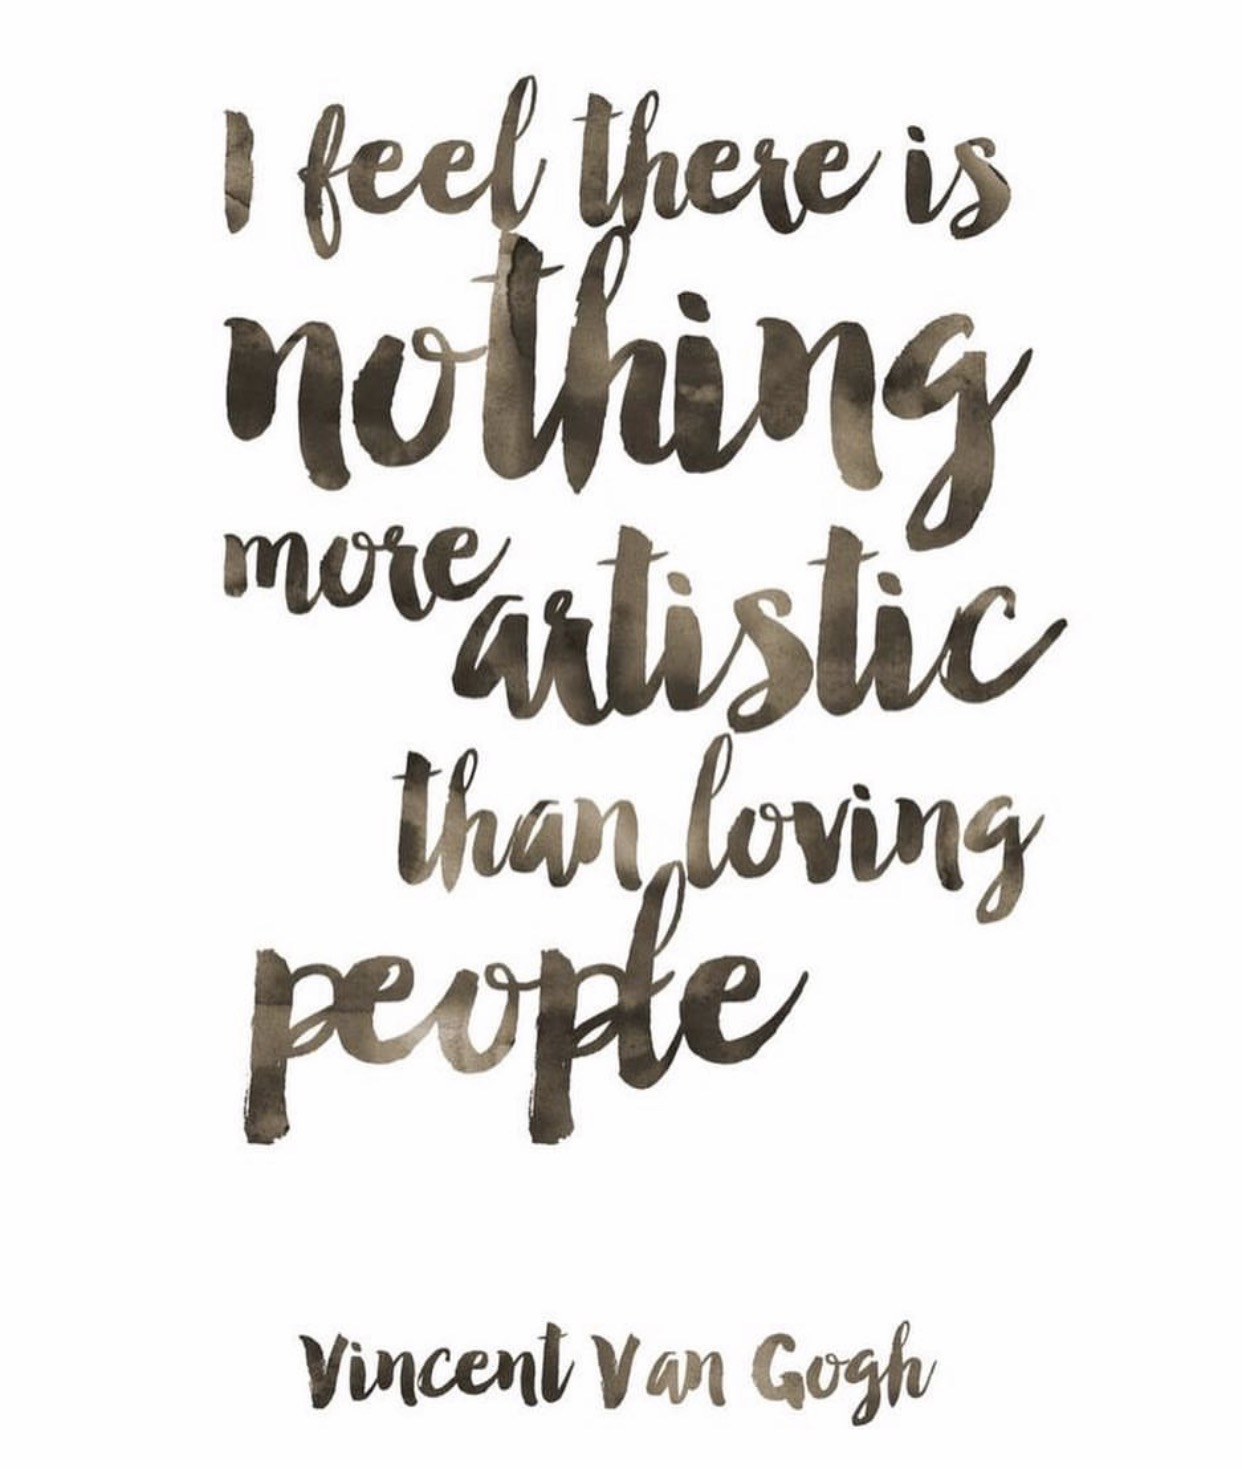 I've included this in on tonight's inspiration post, because it's so true! This is perhaps is the busiest I've been in my life. I not only want to take in these moments because I'll never see or experience them again, but I also want to carve out time to genuinely love the people around me. There's nothing more beautiful and inspiring than the lovely souls I'm surrounded by day in, day out.